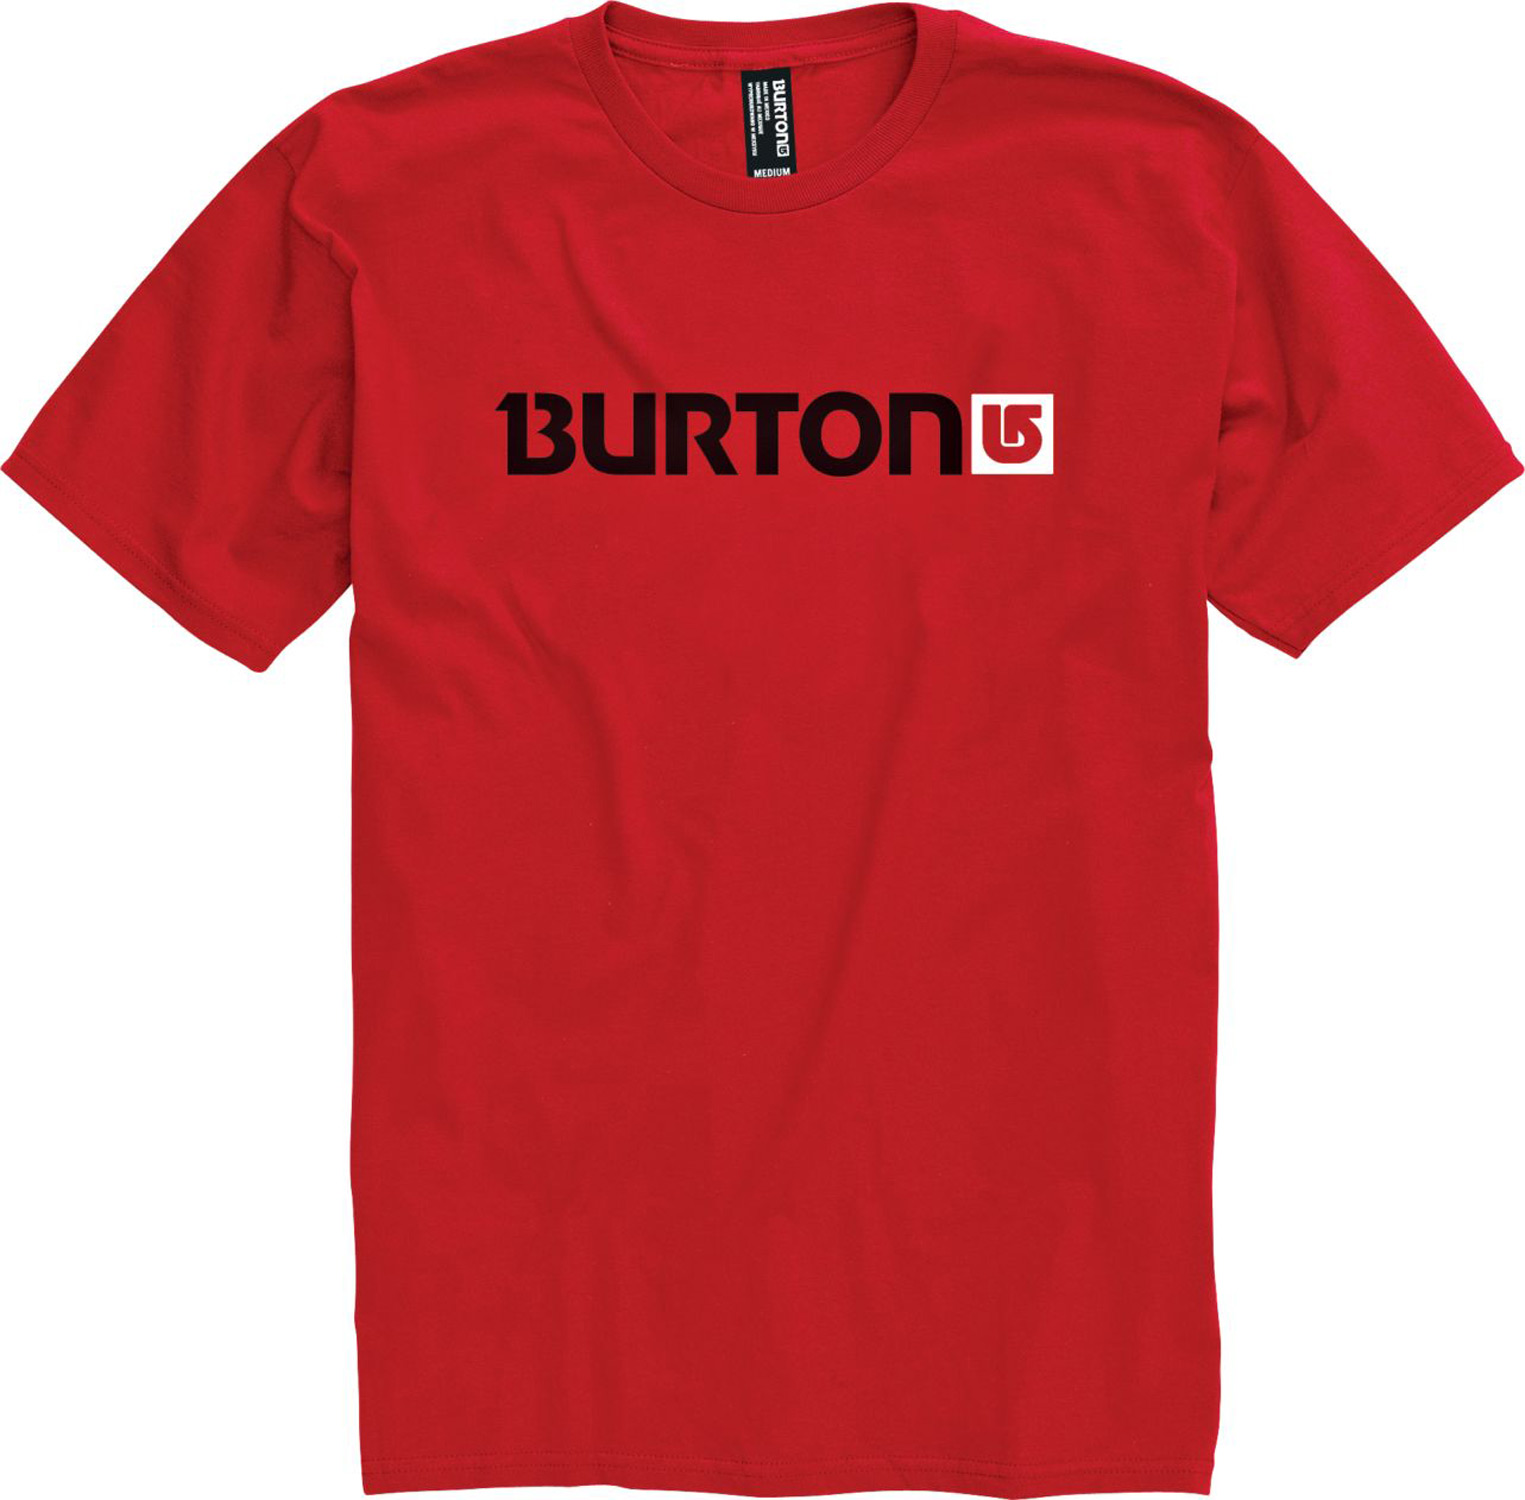 Snowboard Key Features of The Burton Logo Horizontal T-Shirt: Regular Fit Crew Neck Short Sleeve 100% Cotton Regular Fit Screen Print on Front and Back - $15.95